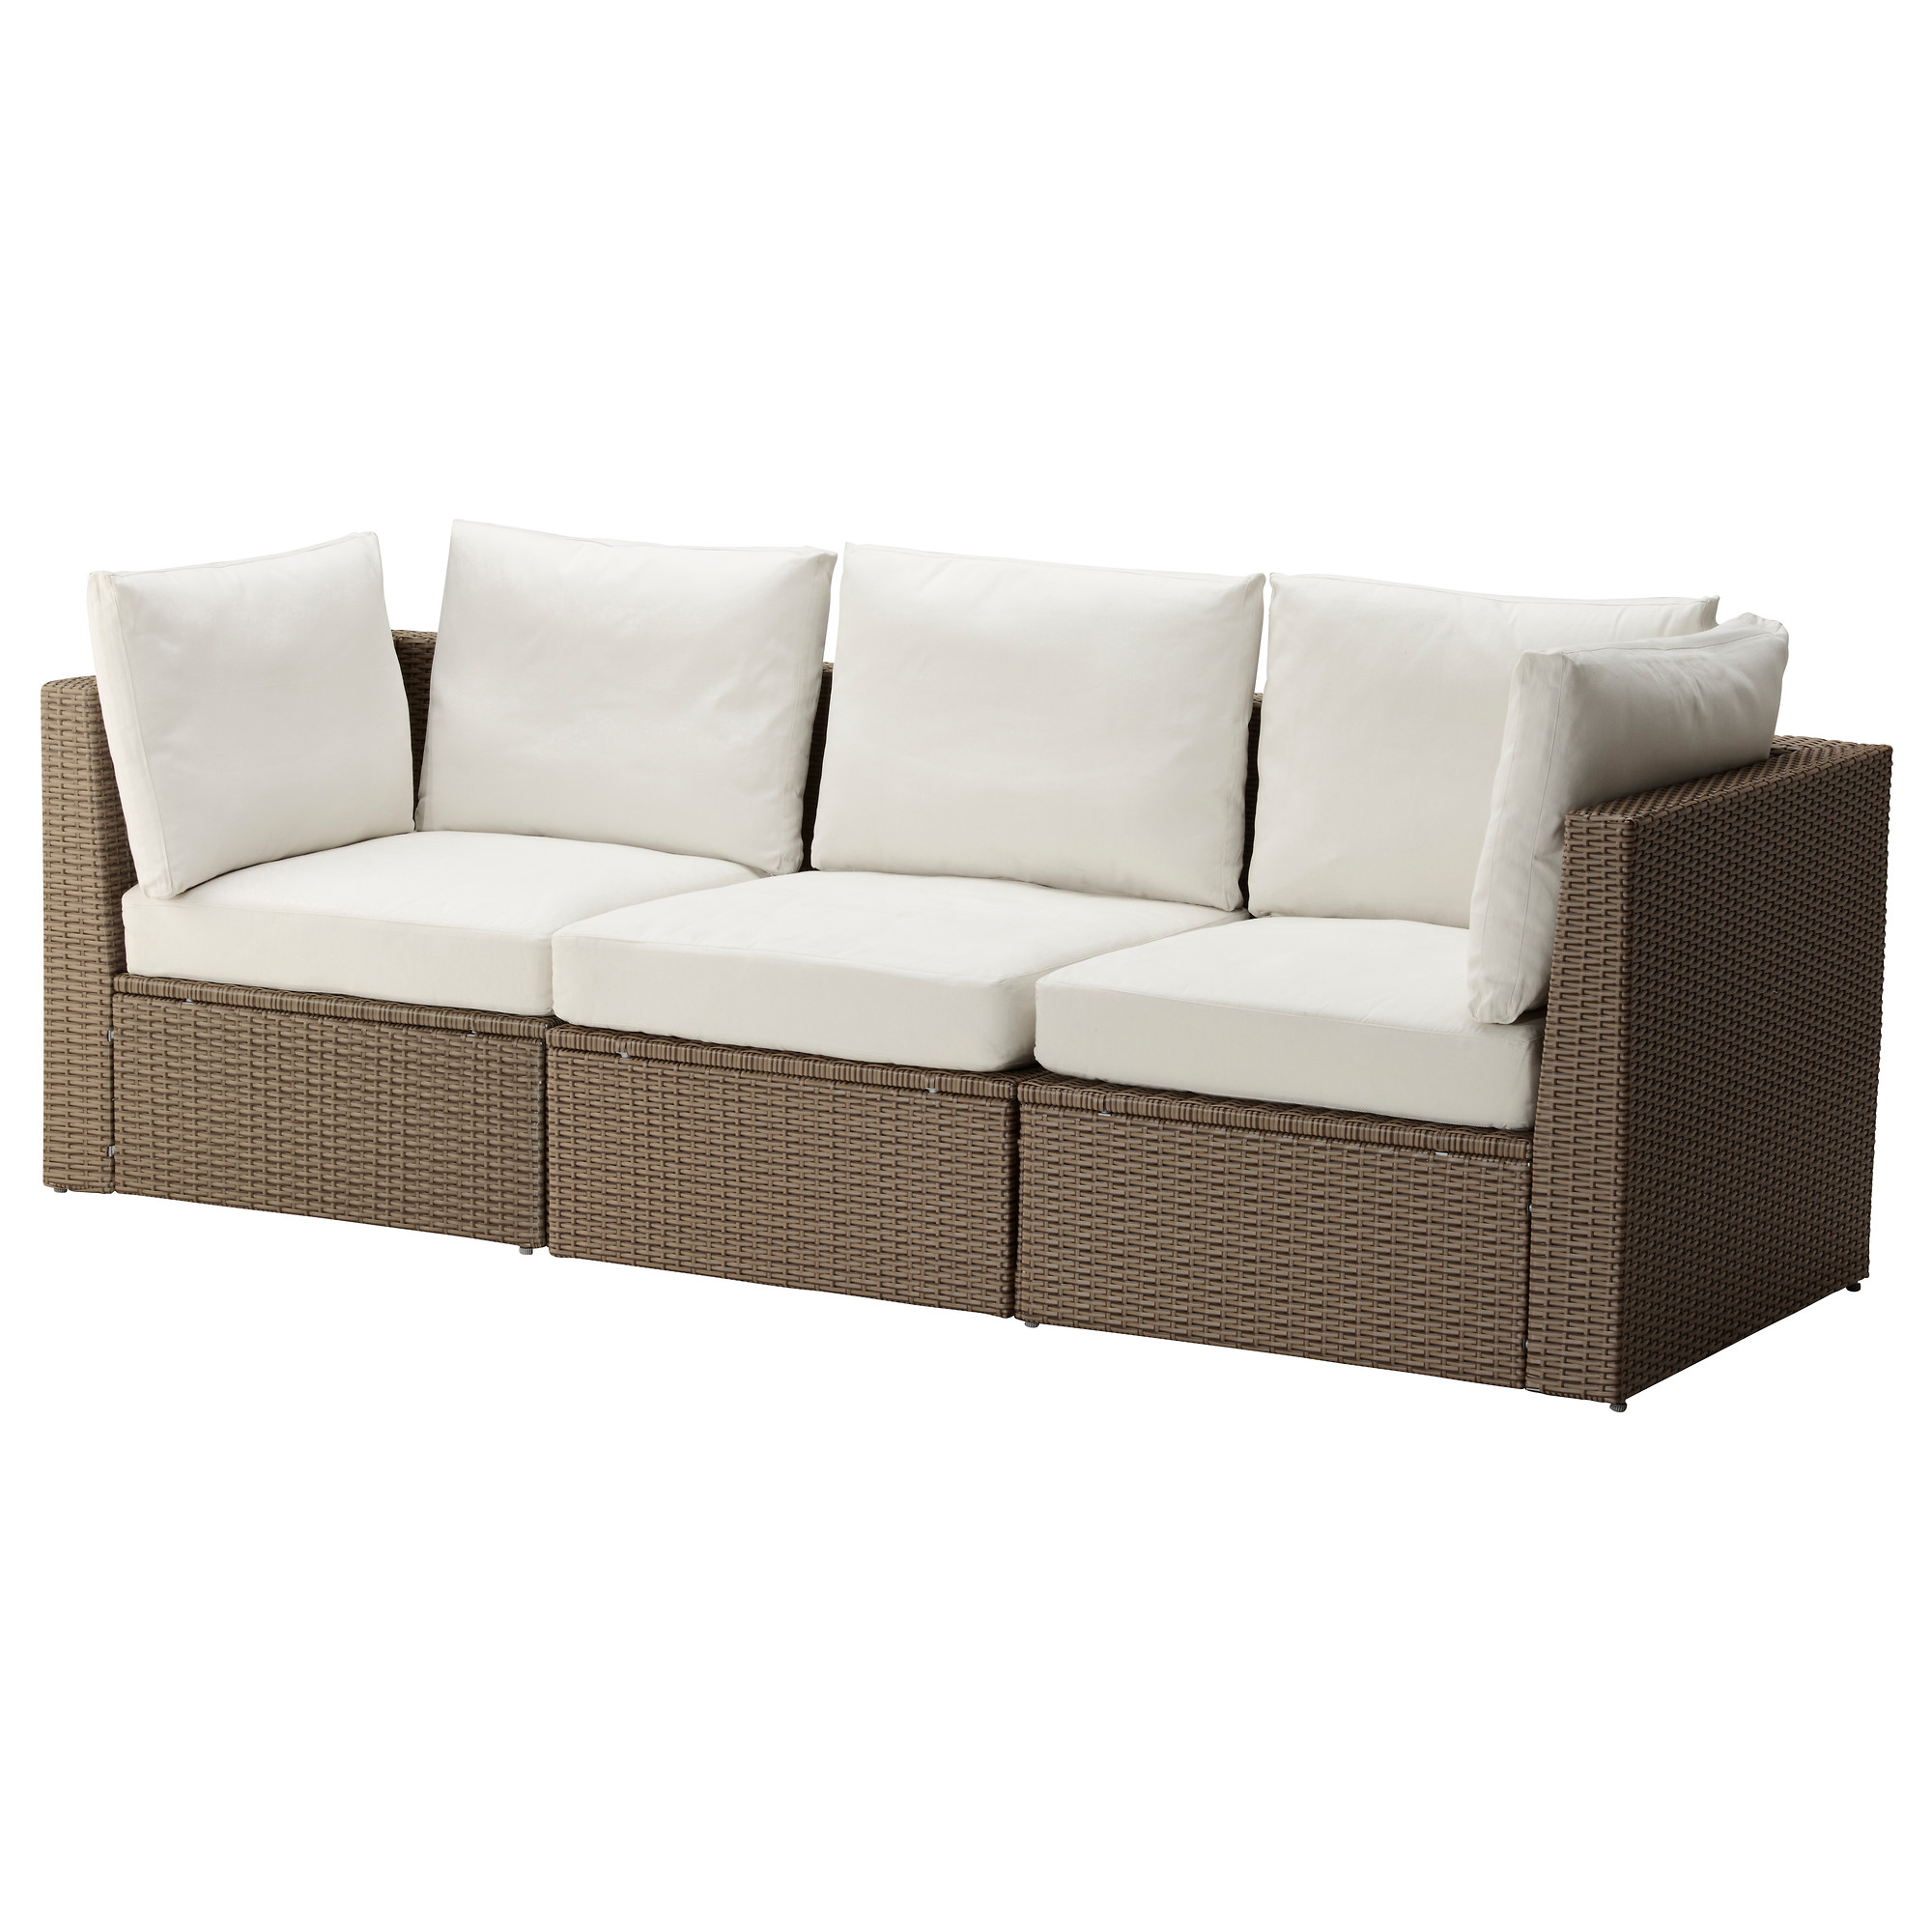 outdoor sofa arholma sofa, outdoor - ikea YSCARXE